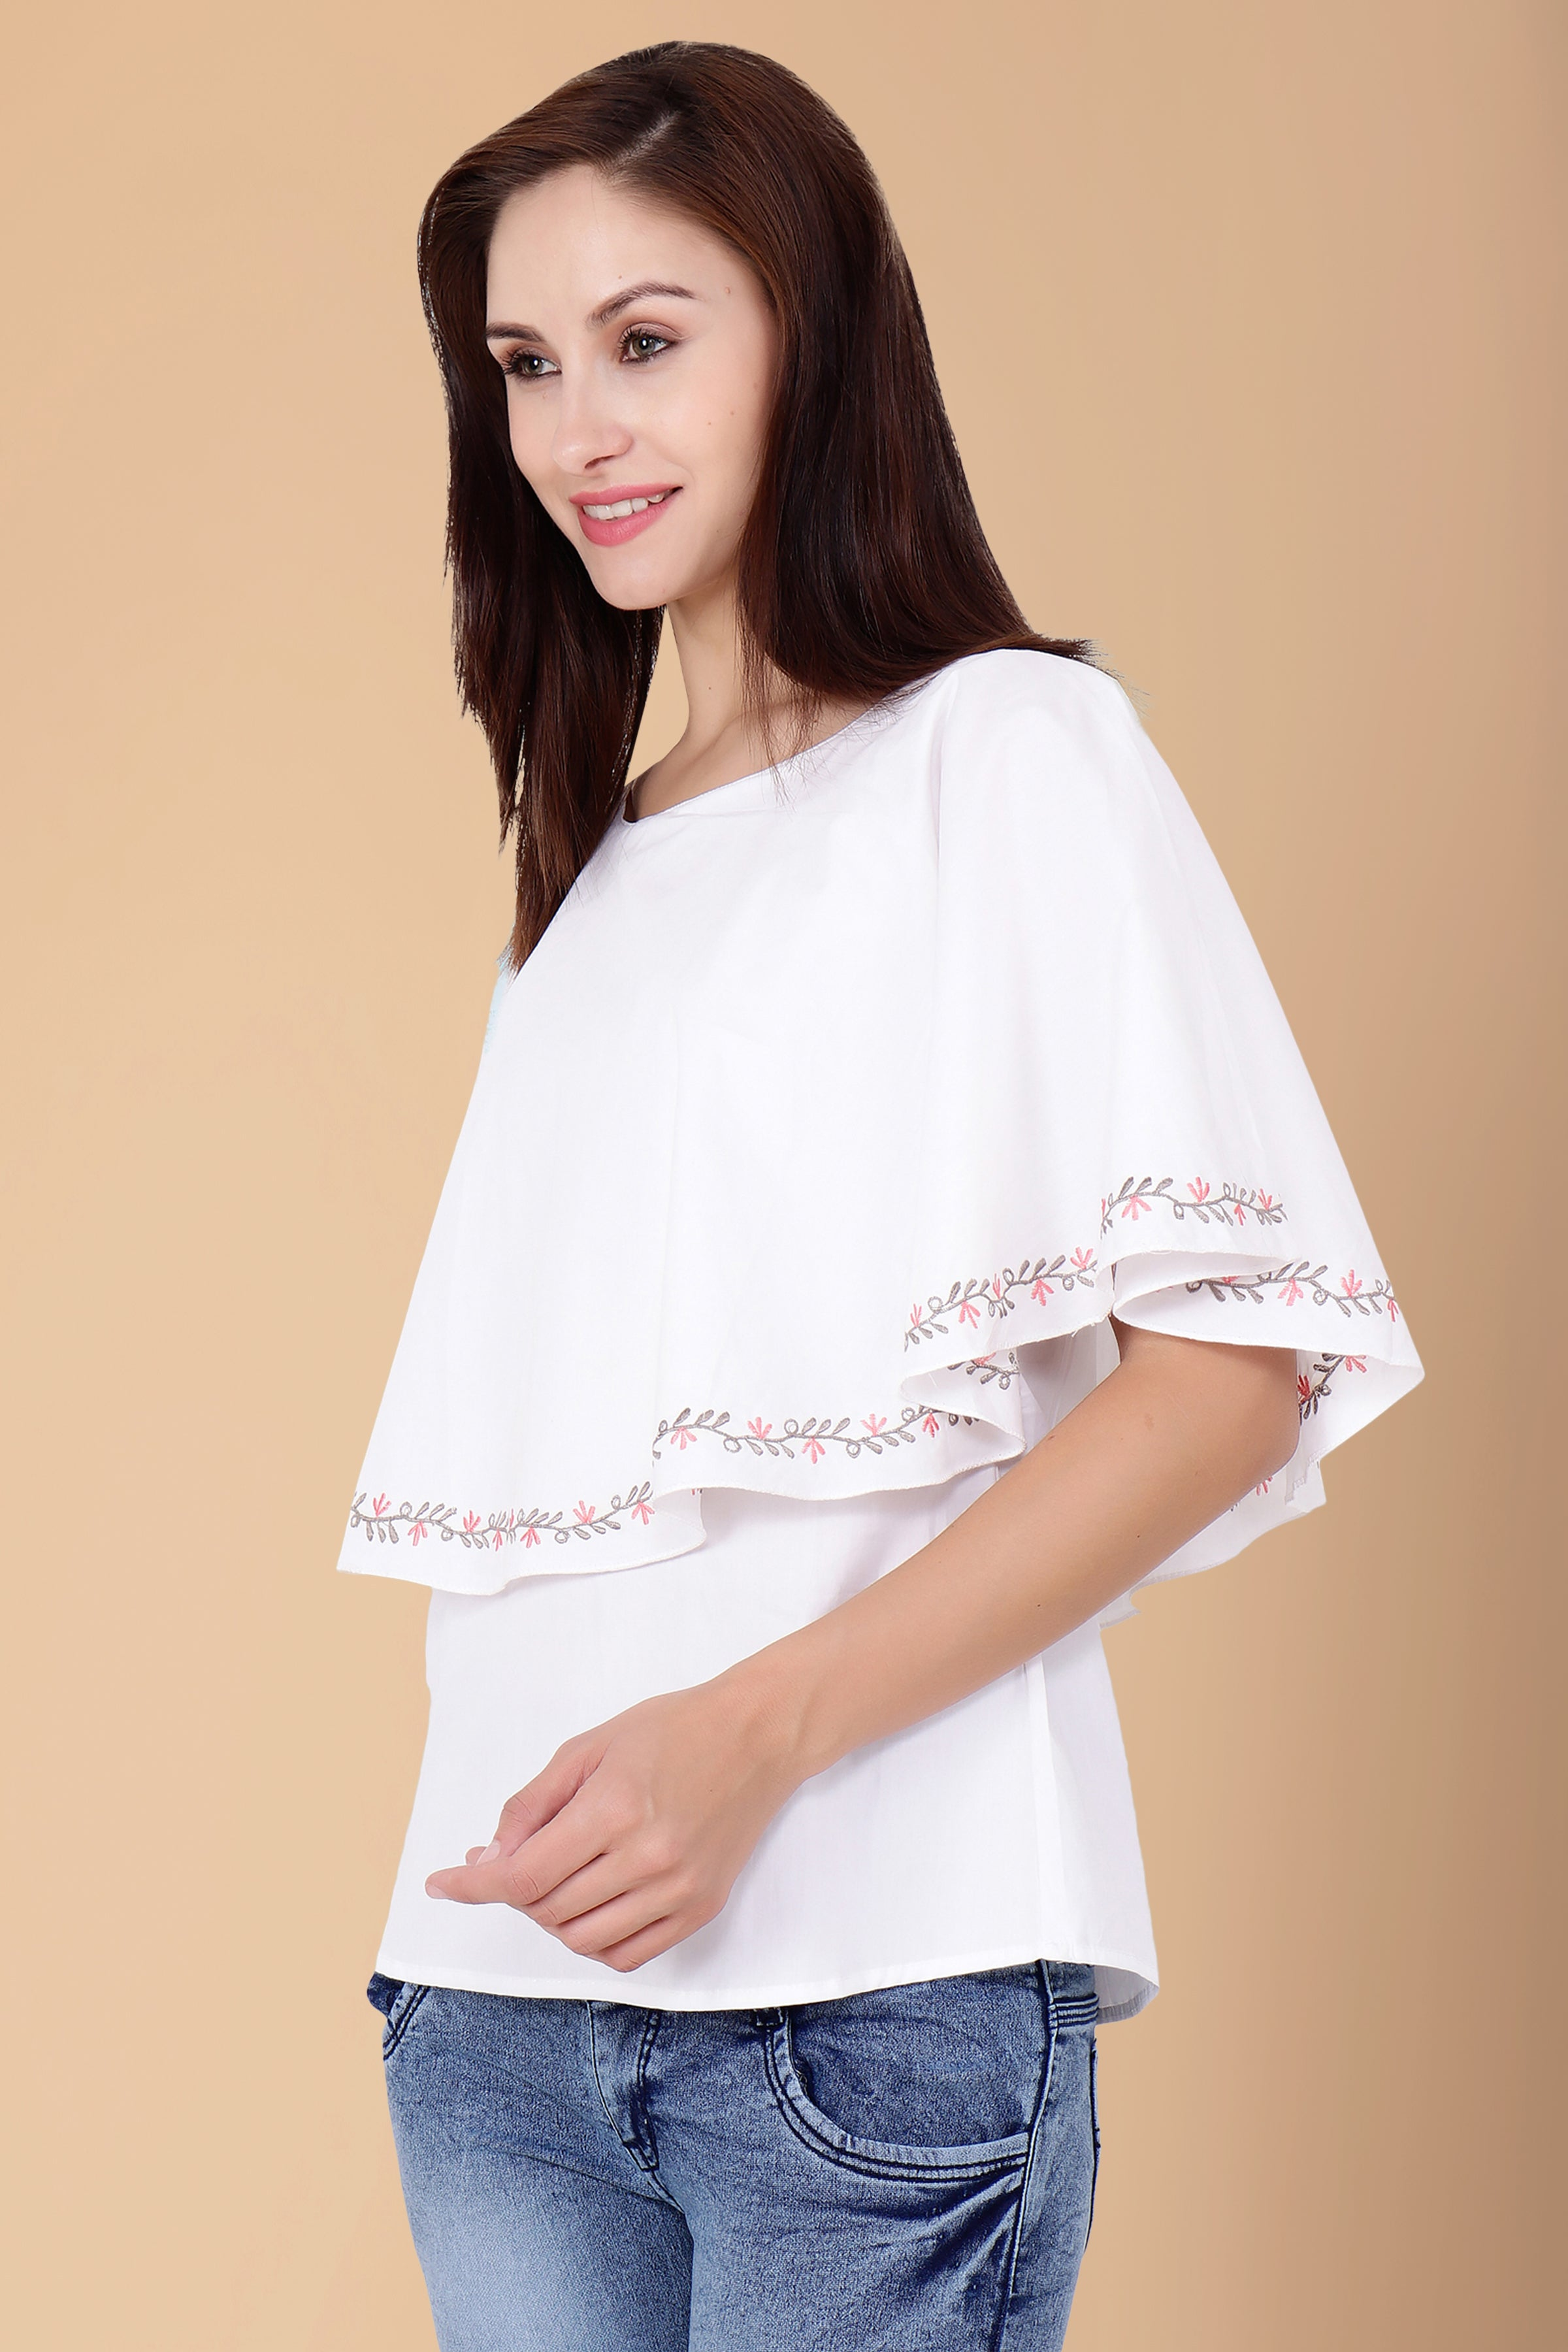 10XL, 2XL, 3XL, 4XL, 5XL, 6XL, 7XL, 8XL, 9XL, BOAT, Cape, Cotton, EMBROIDERY, PLUS SIZE TOP, Solid, THREAD WORK, White